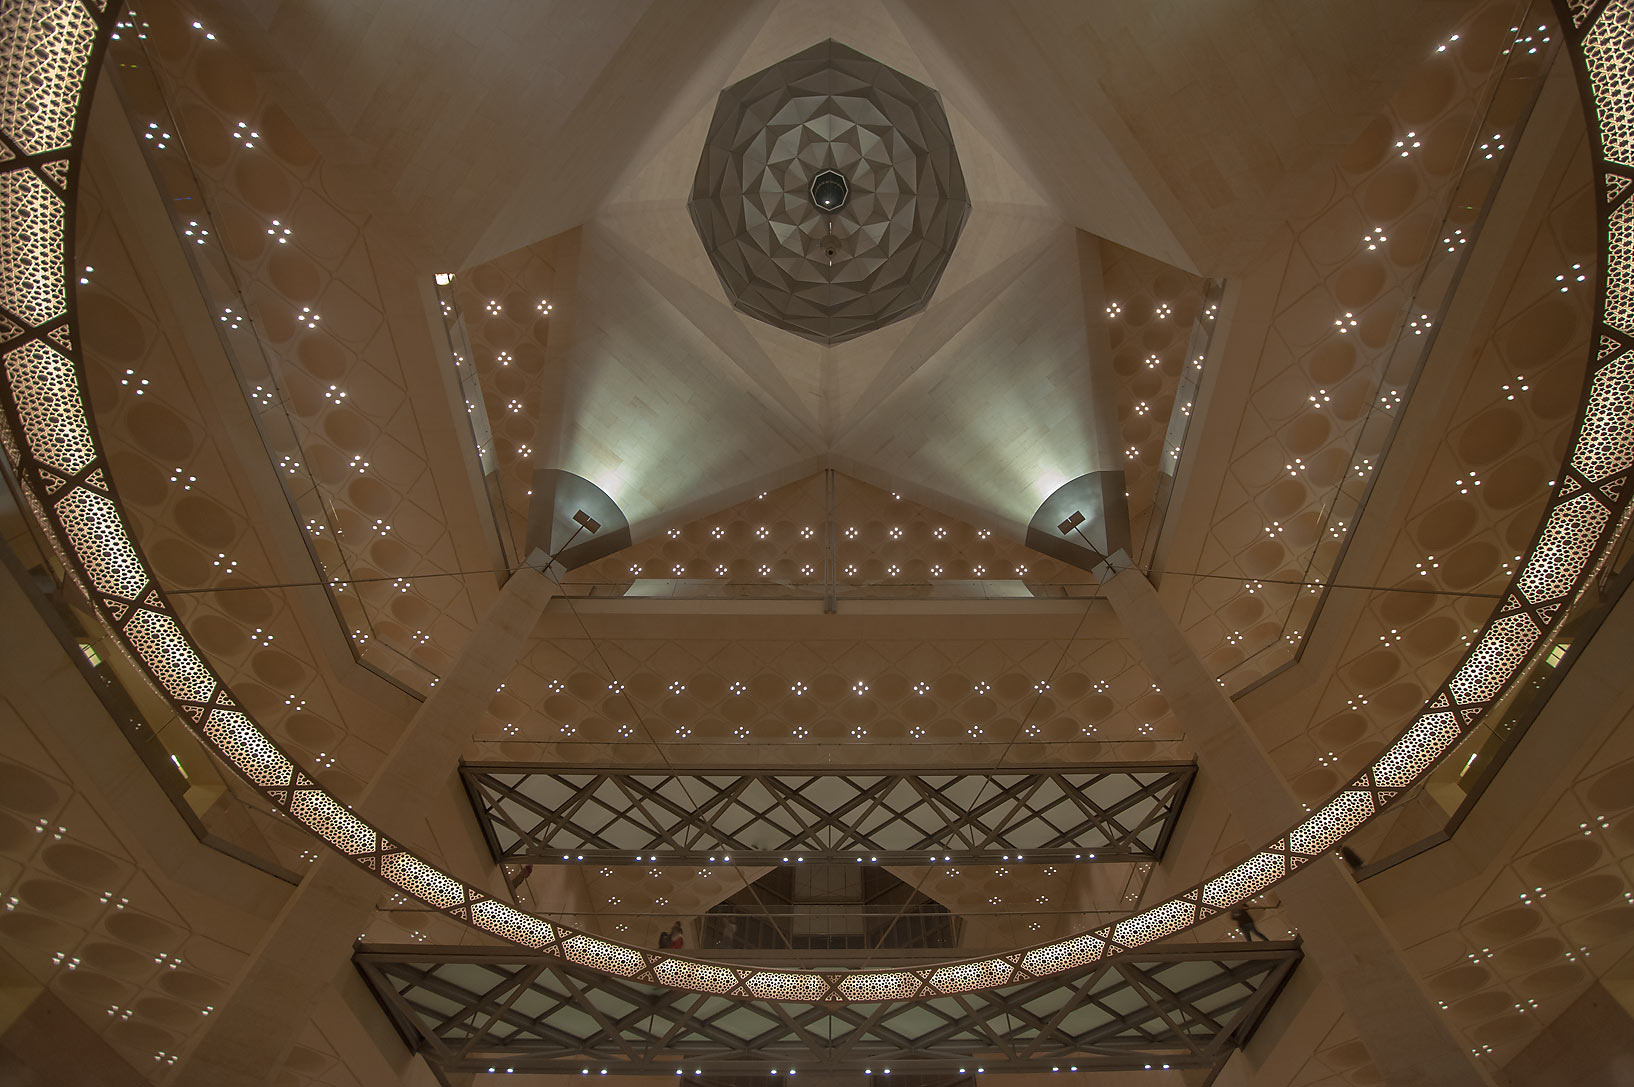 Perforated chandelier and ceiling of Museum of Islamic Art. Doha, Qatar